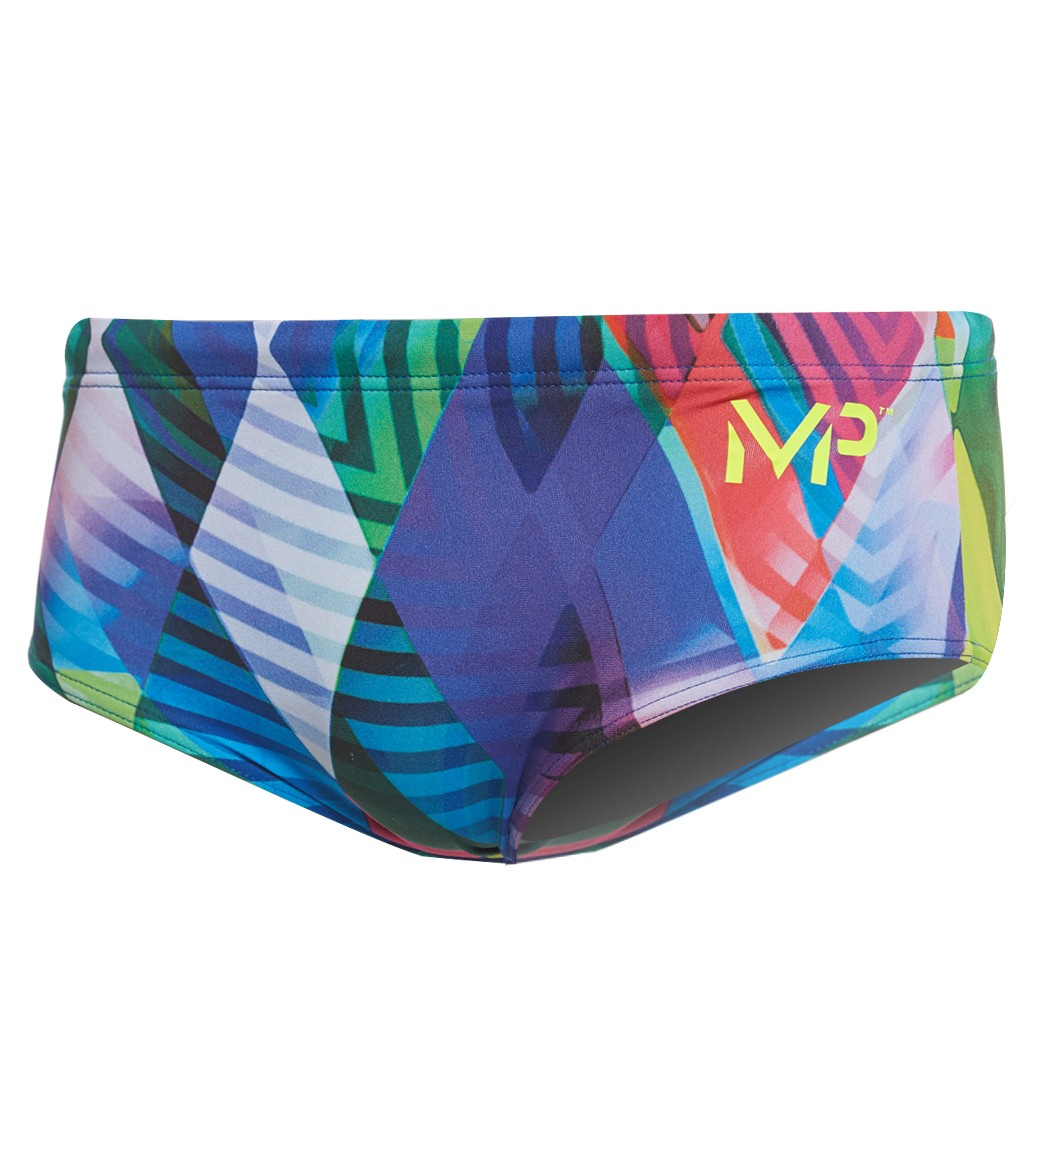 947309fbc5 ... MP Michael Phelps Men's Zuglo Square Leg Brief Swimsuit. Share